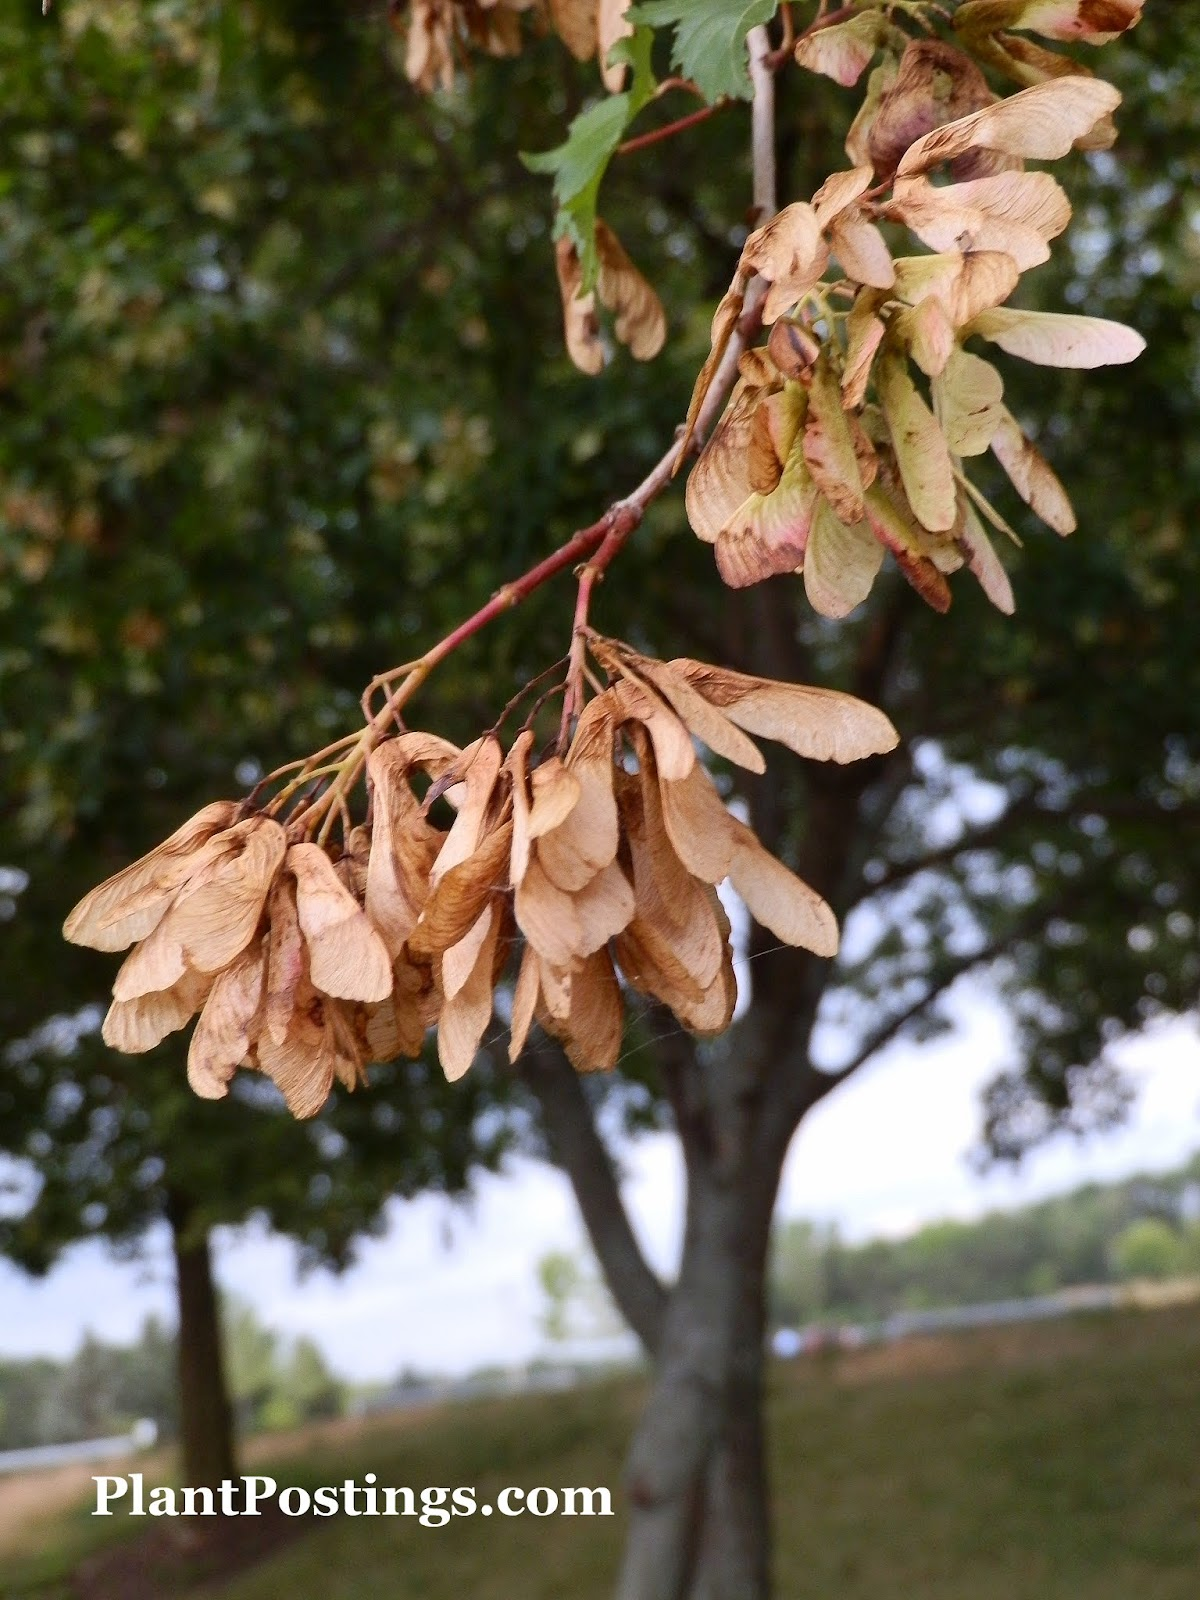 PlantPostings: Plant of the month: Shagbark Hickory